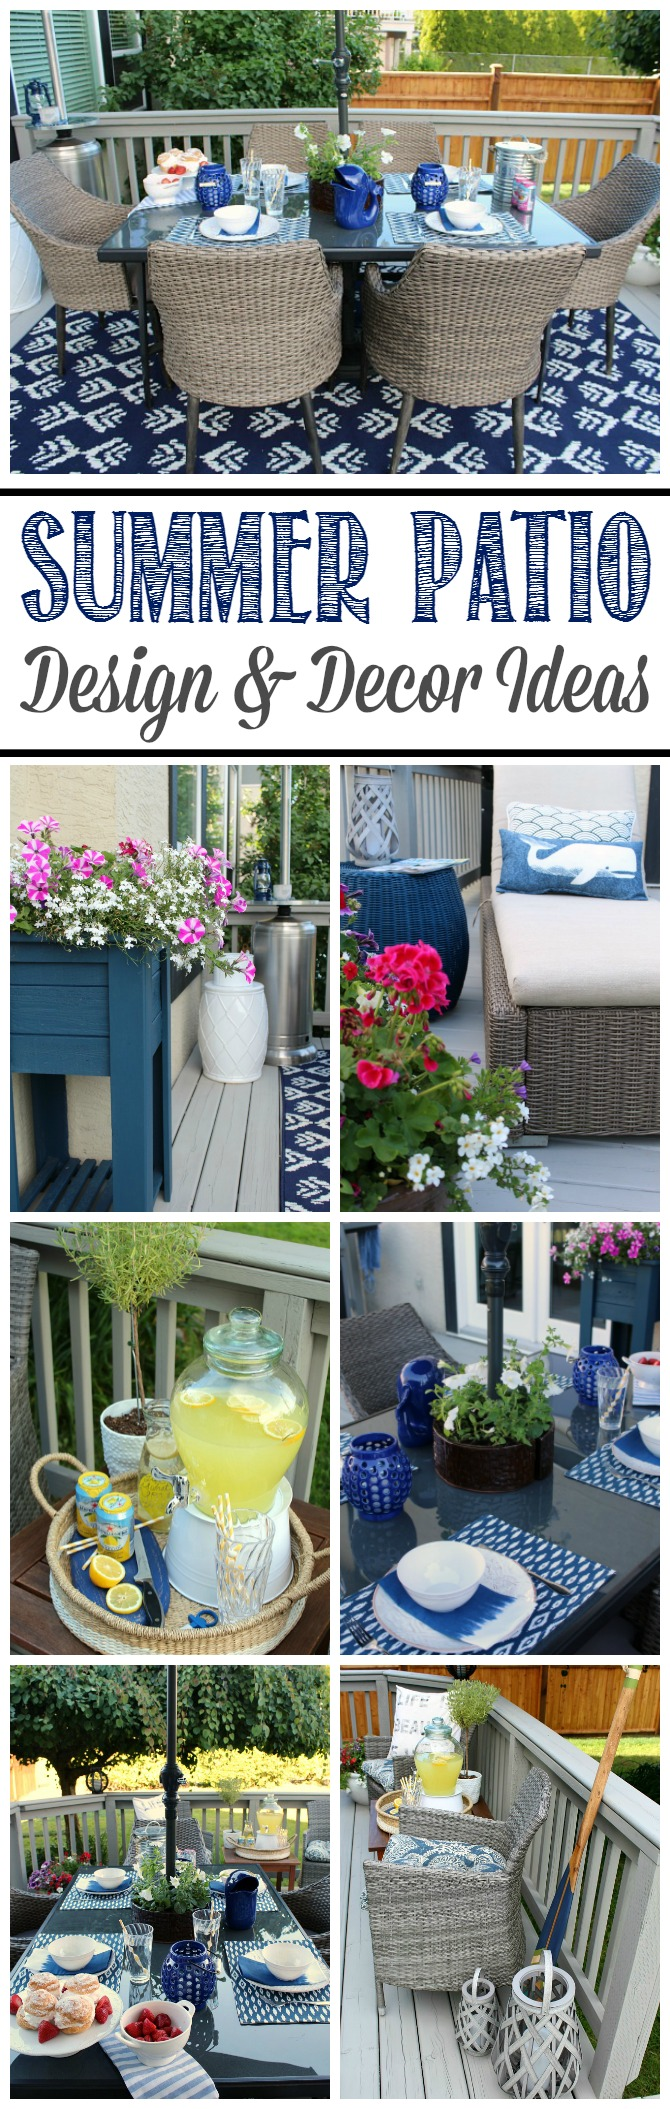 A collection fo beautiful summer patio design and decor ideas.